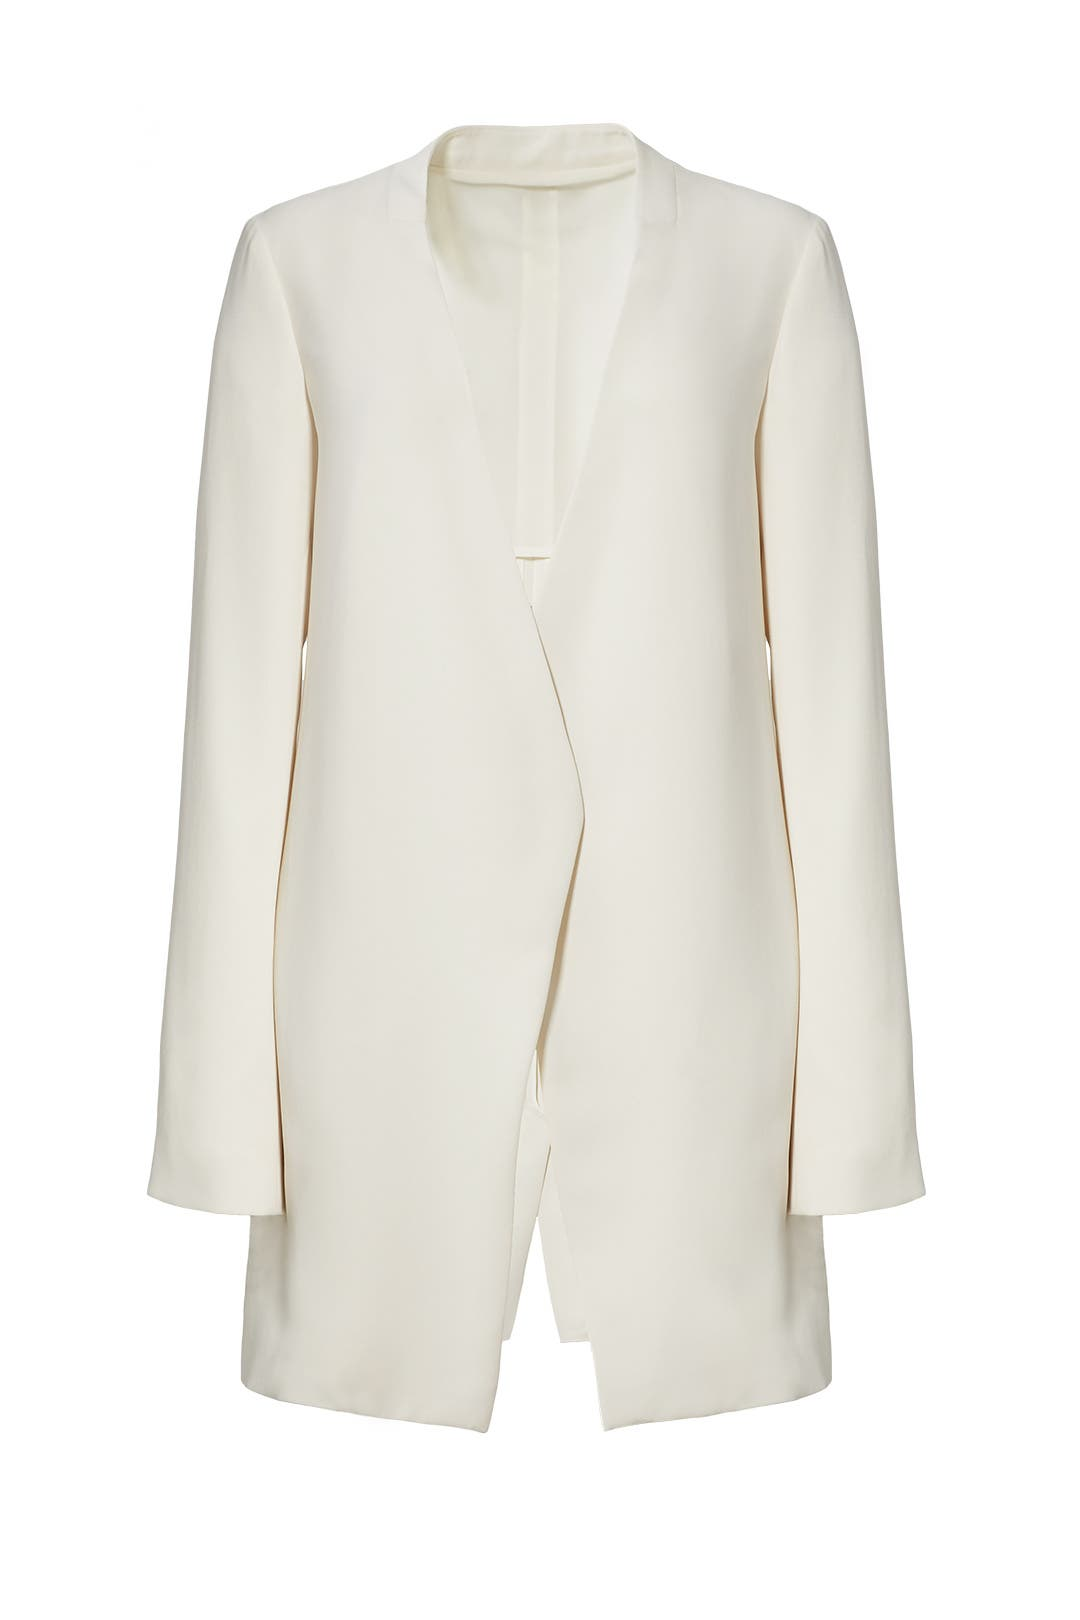 26d524be6b White Winola Jacket by Theory for $80 | Rent the Runway